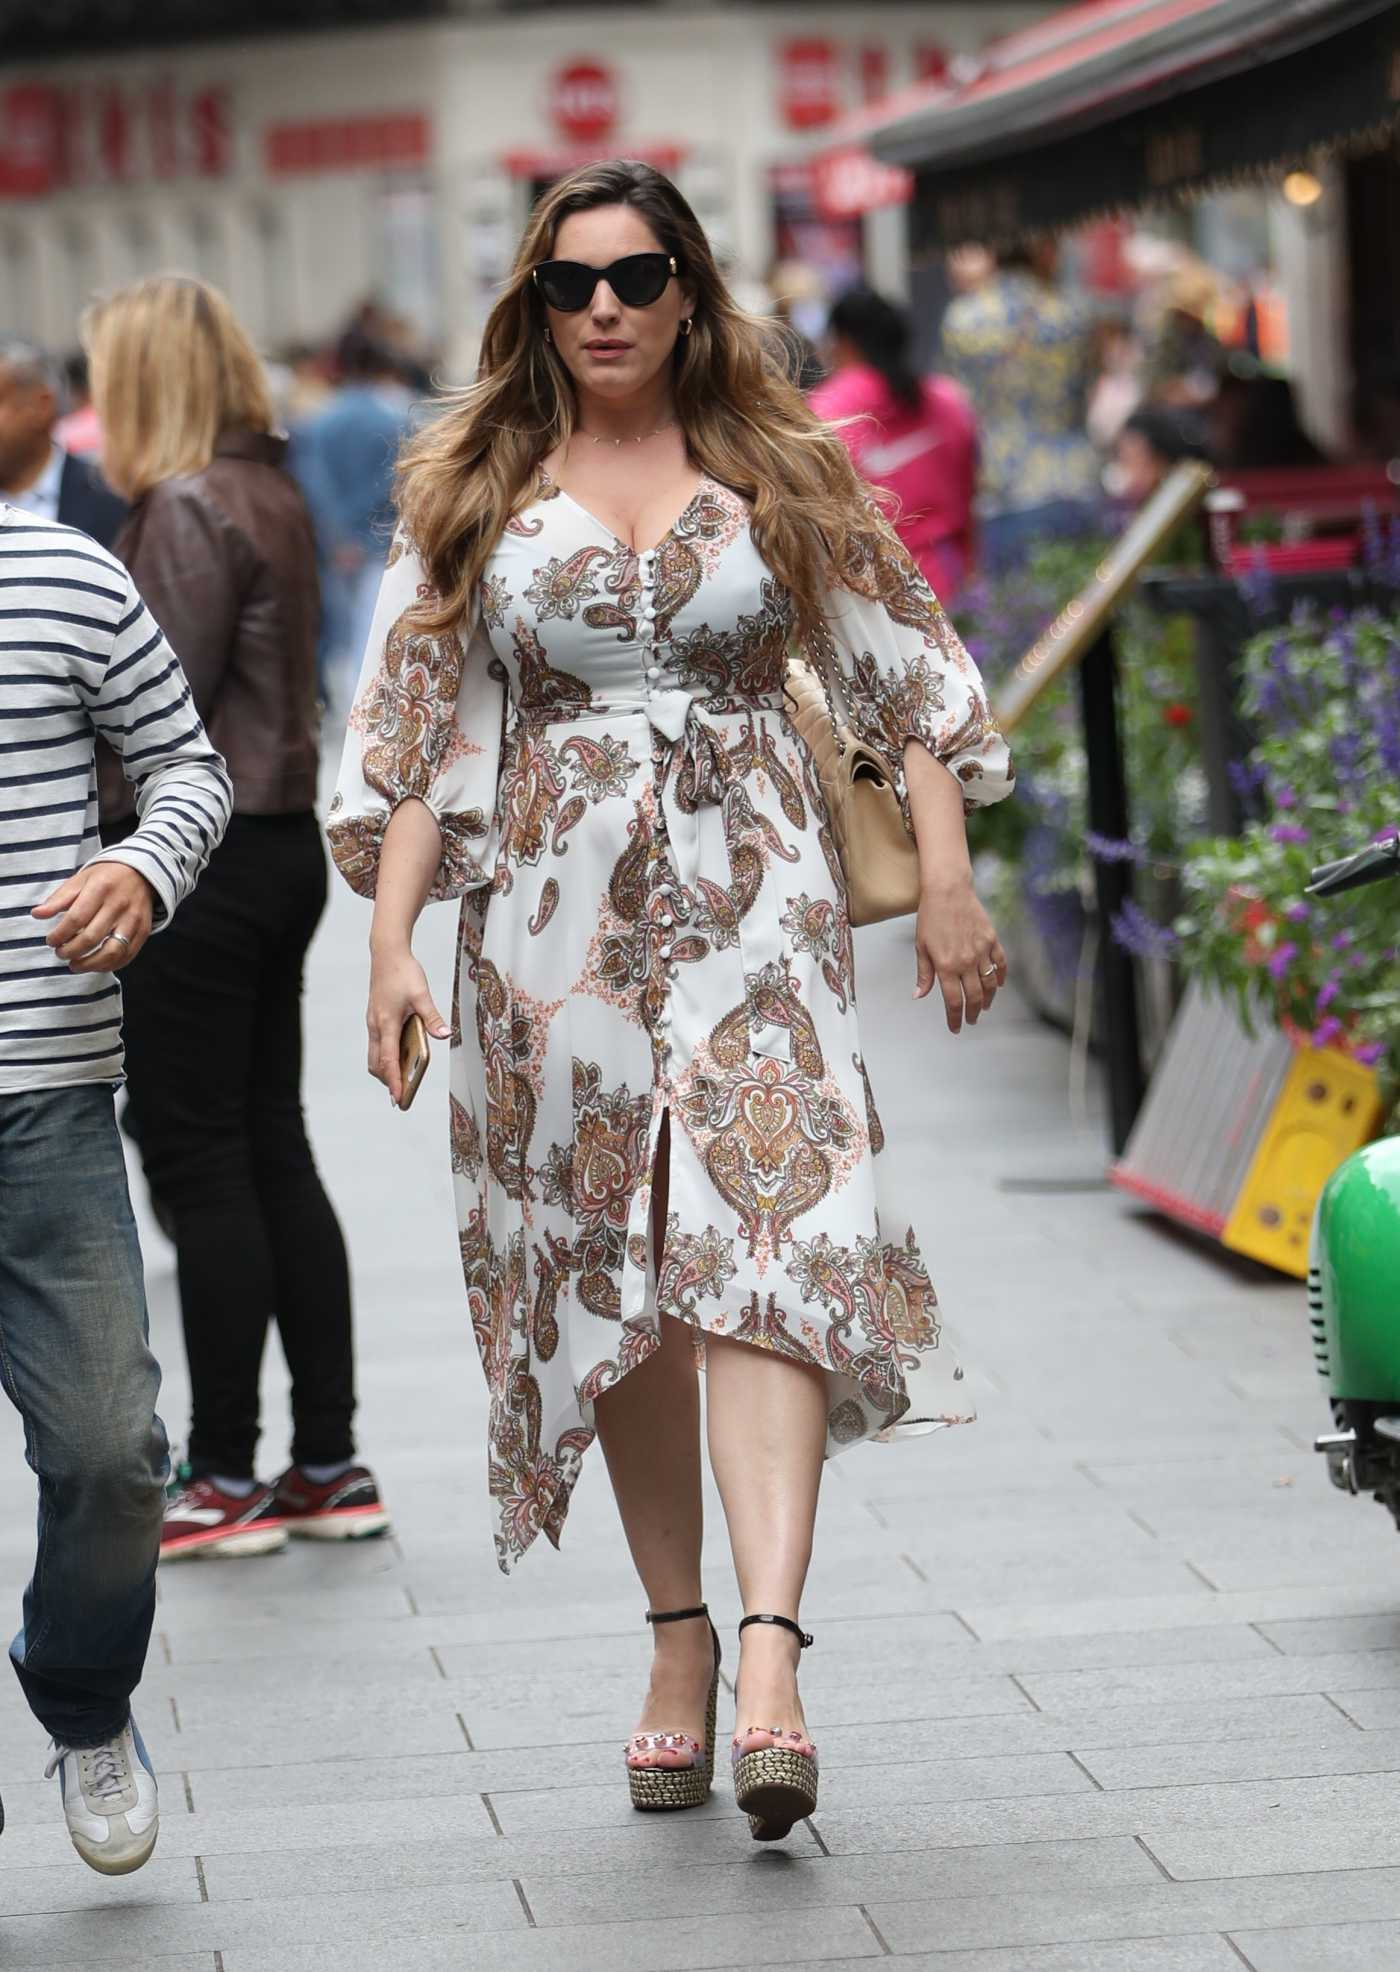 Kelly Brook in a White Floral Dress Arrives at Global Radio Studios in London 07/15/2019